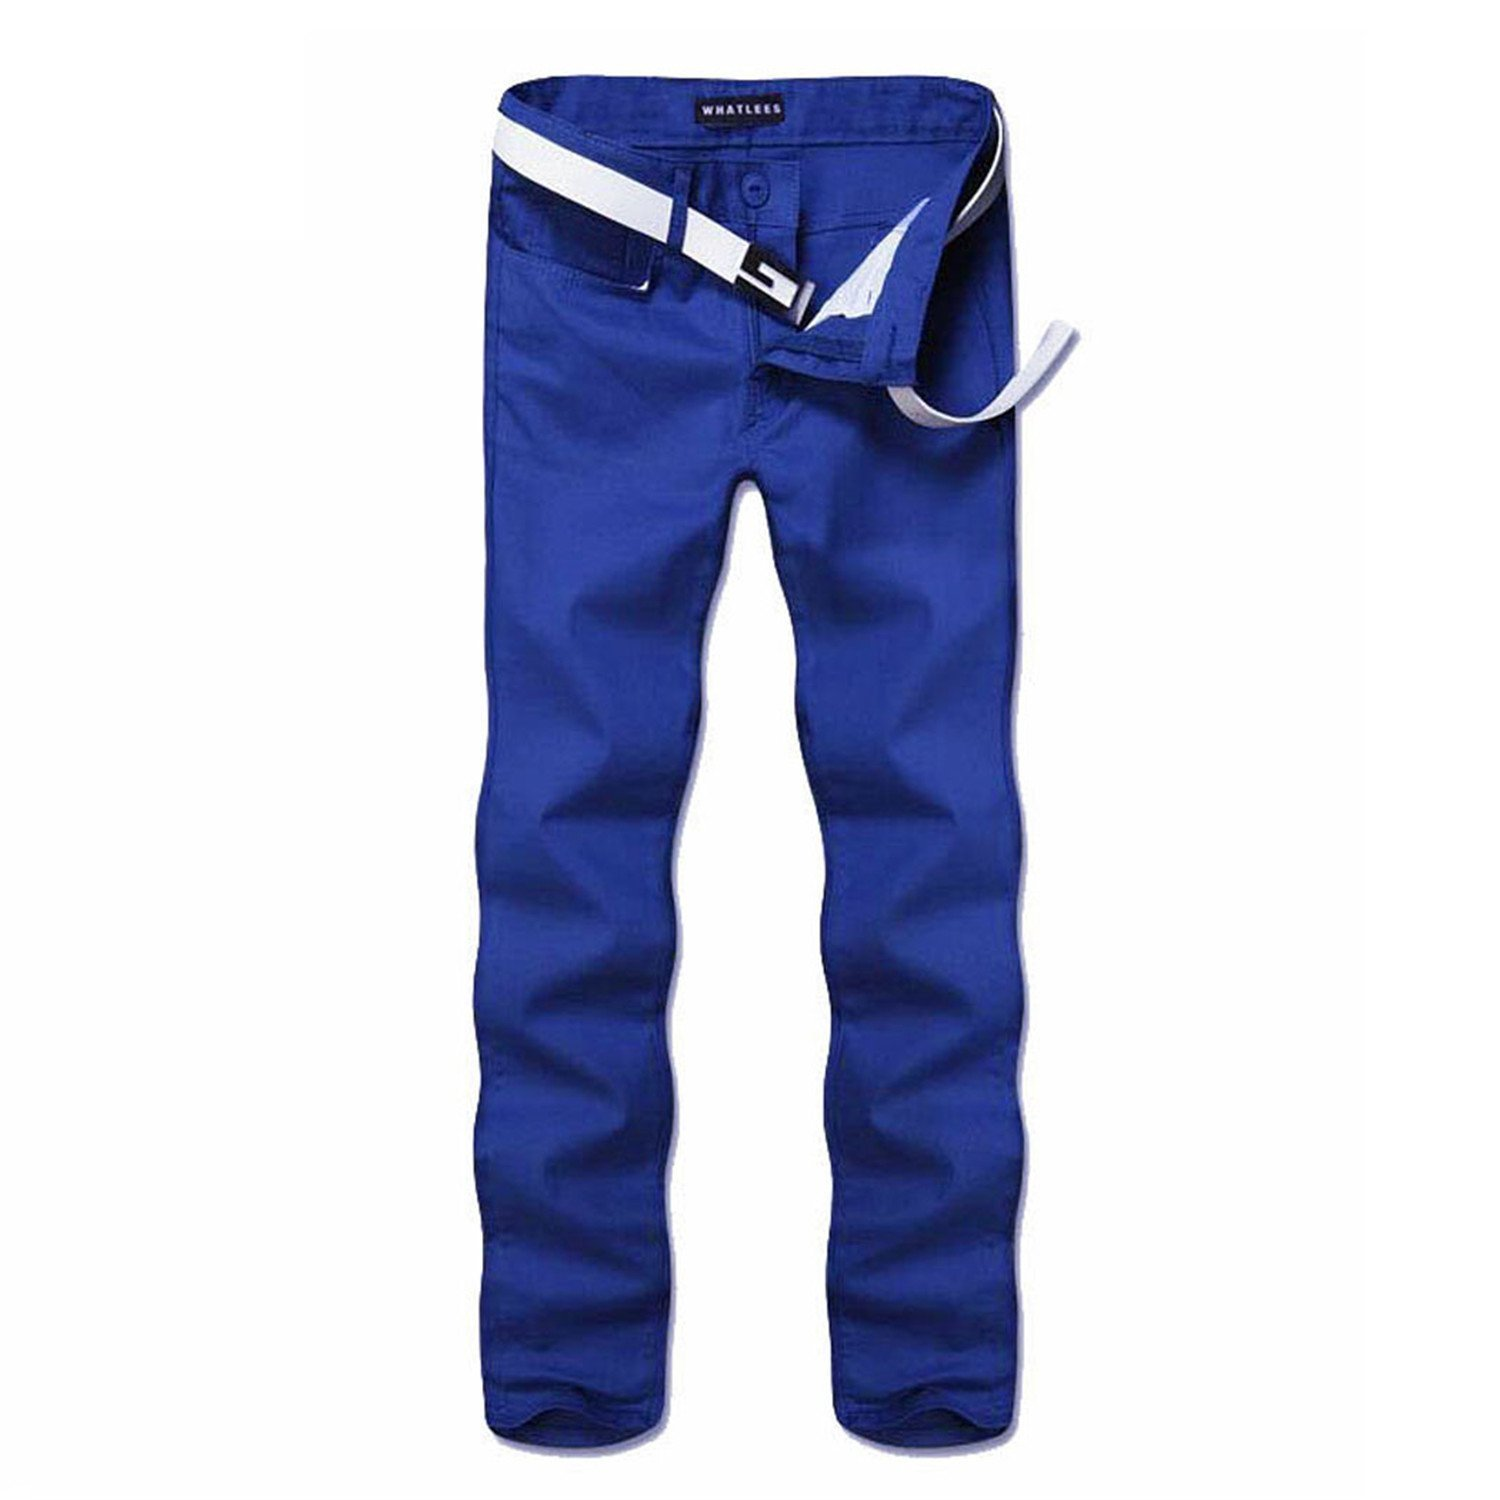 Toping Fine Pants Mens Fashion Elastic Straight Skinny Trousers Casual Fitted Pants Korean Style 451 Blue30